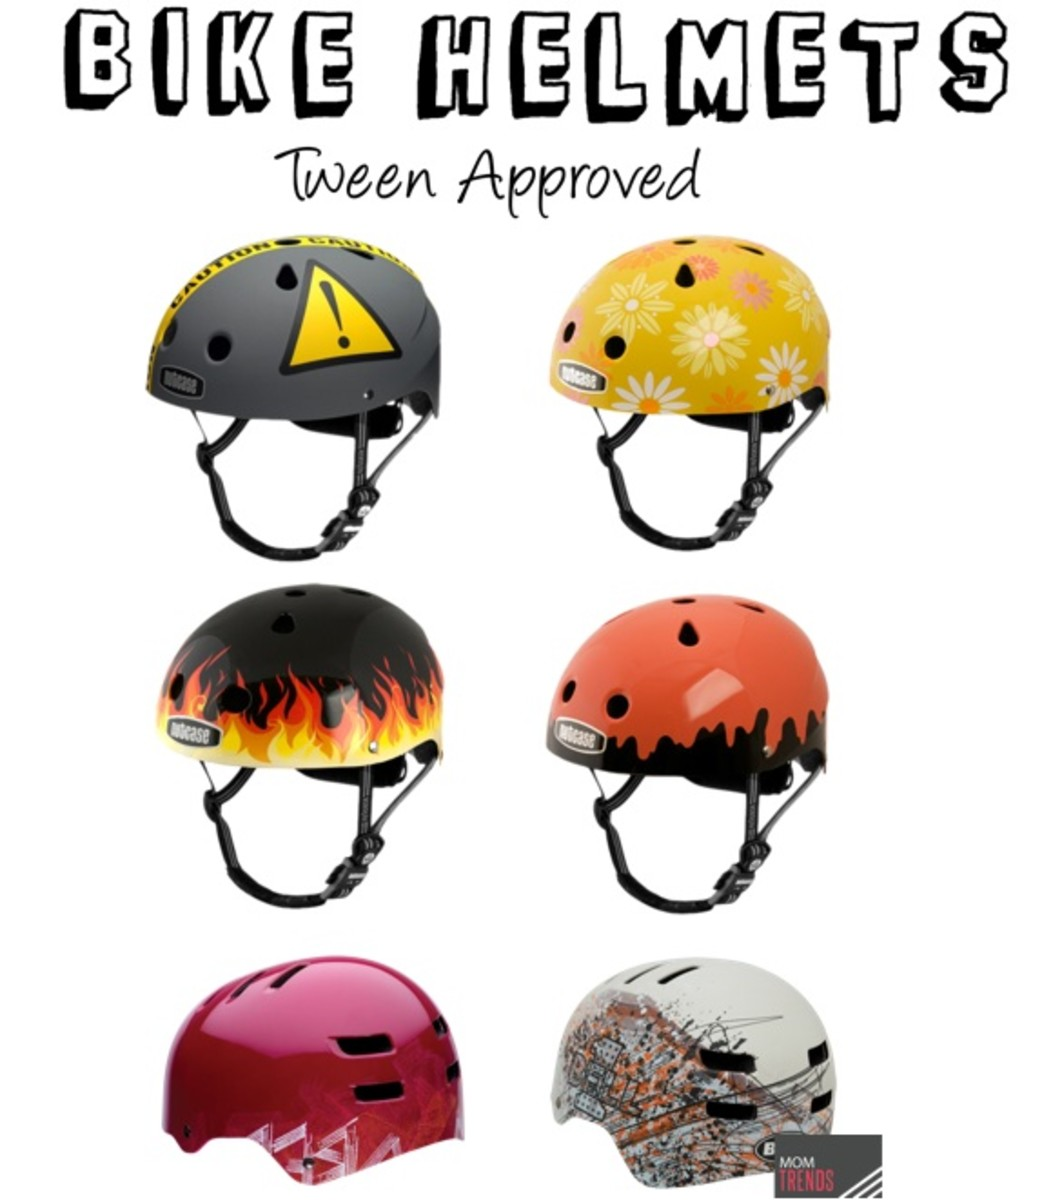 Bike Helmets - Tween Approved